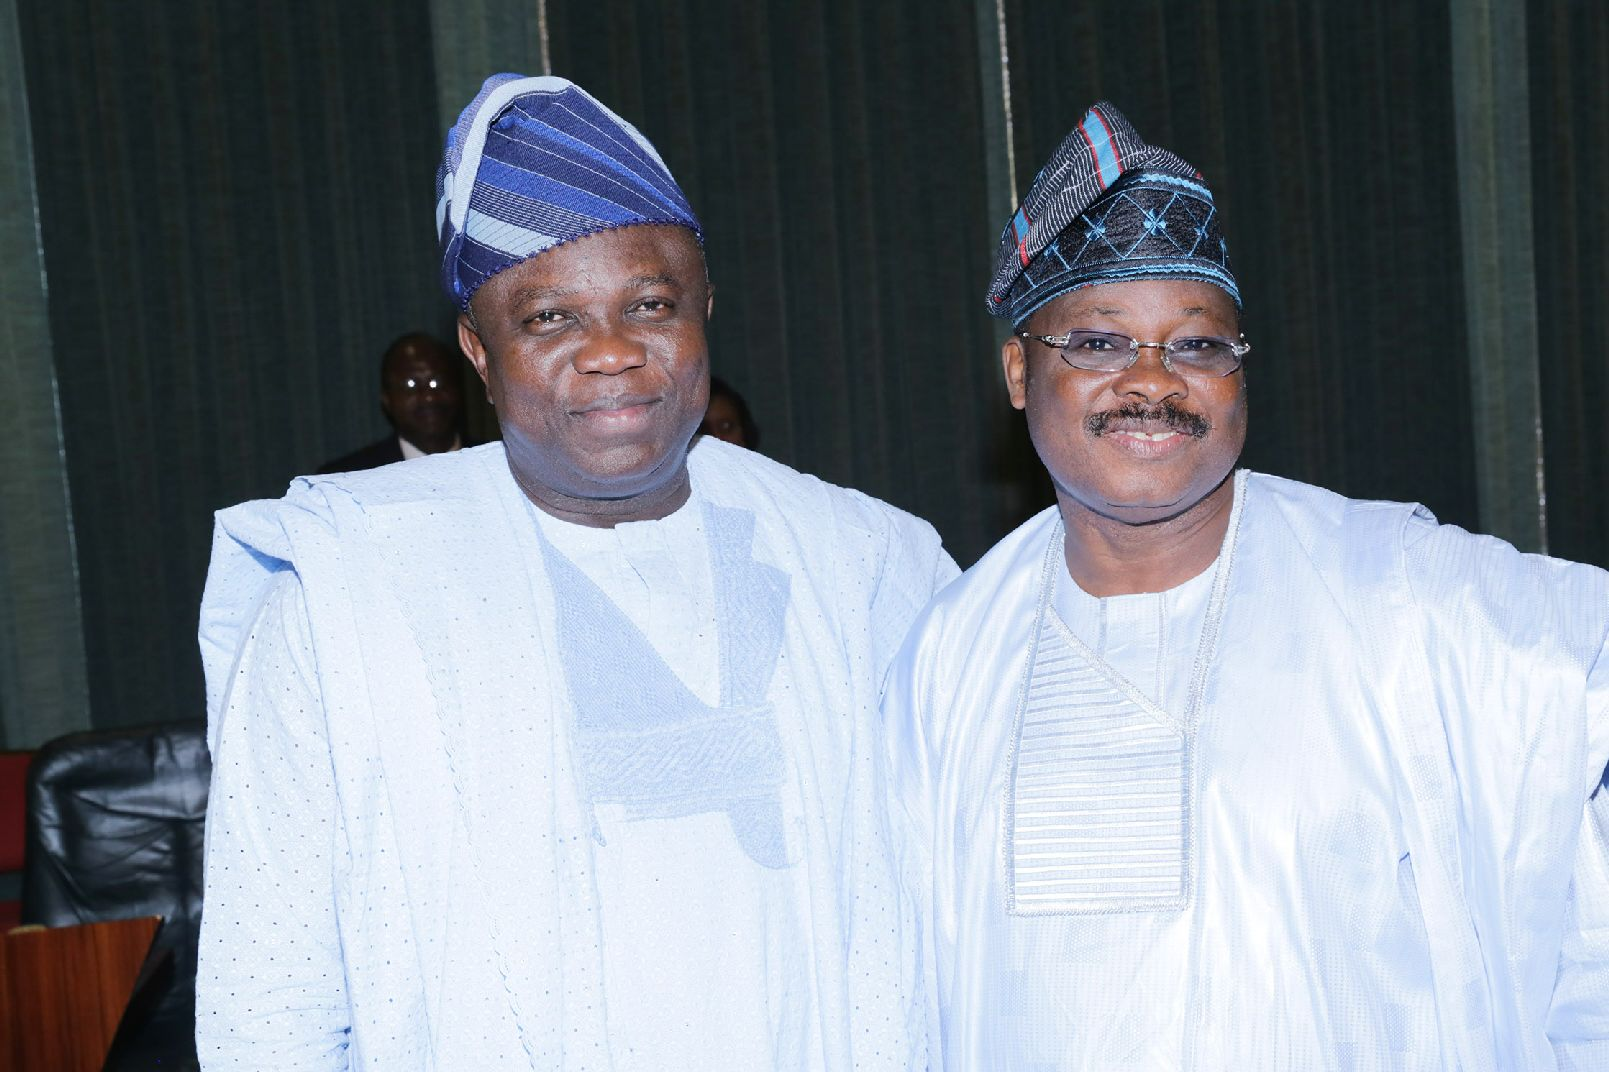 Lagos State Governor, Mr. Akinwunmi Ambode with Governor of Oyo State, Mr. Abiola Ajimobi during the NEC meeting at the State House, Abuja on Thursday, September 17, 2015.